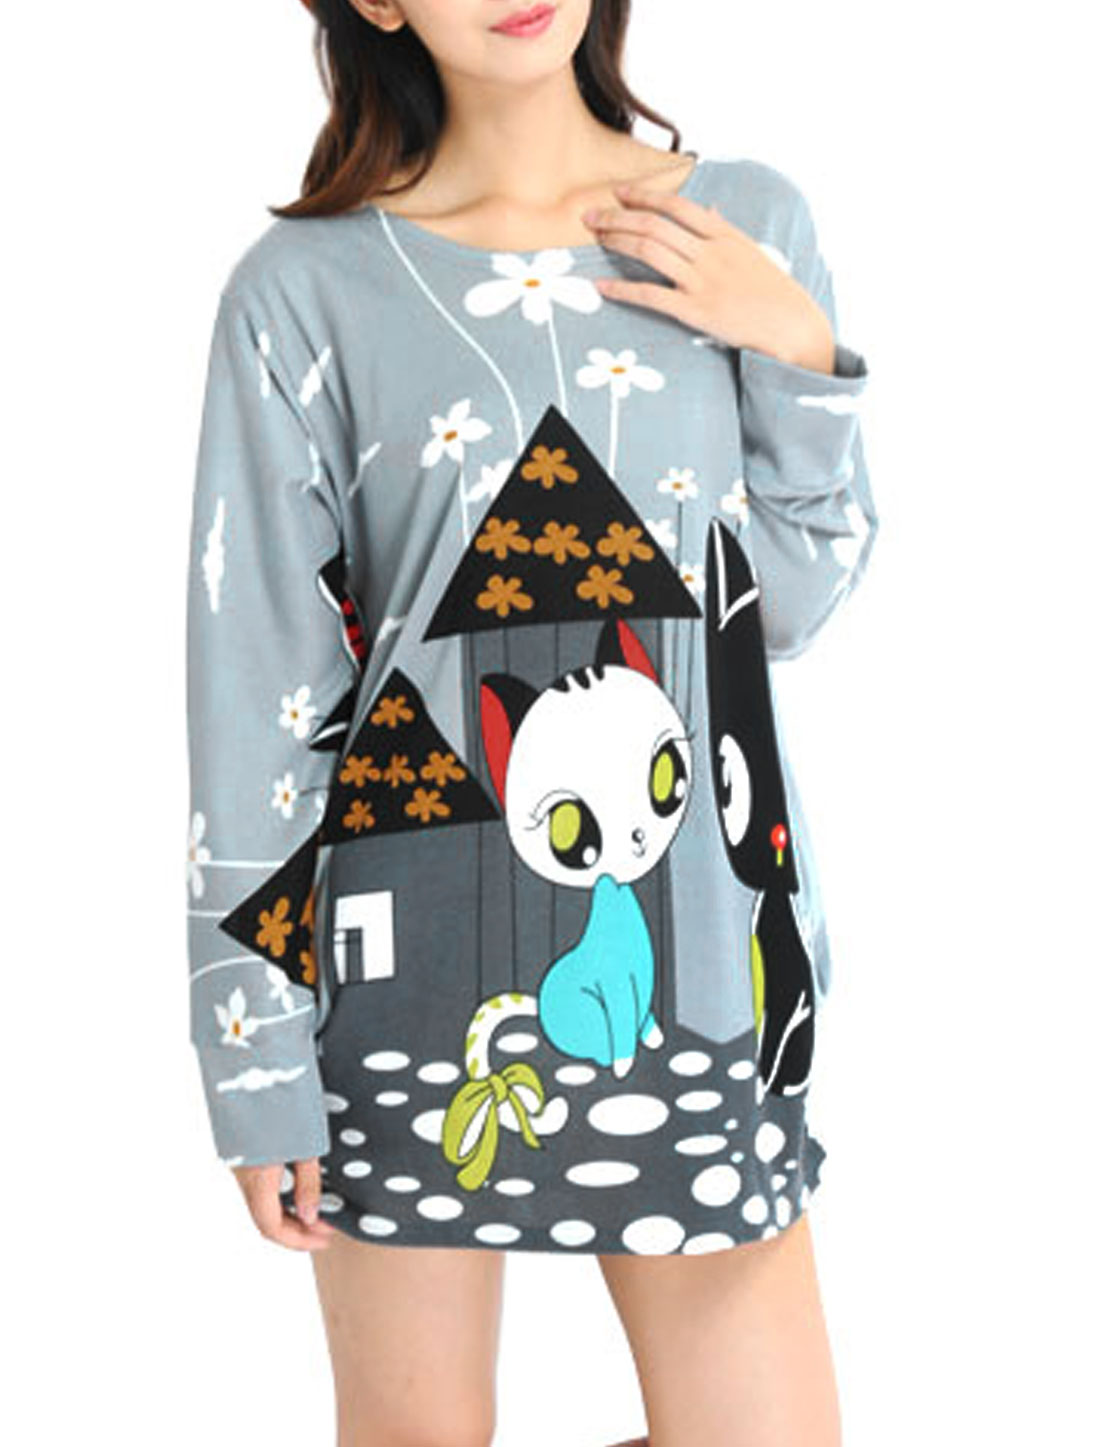 Lady Casual Floral House Pattern Cartoon Cat Pattern Shirred Side Tunic Knit Shirt Light Gray L